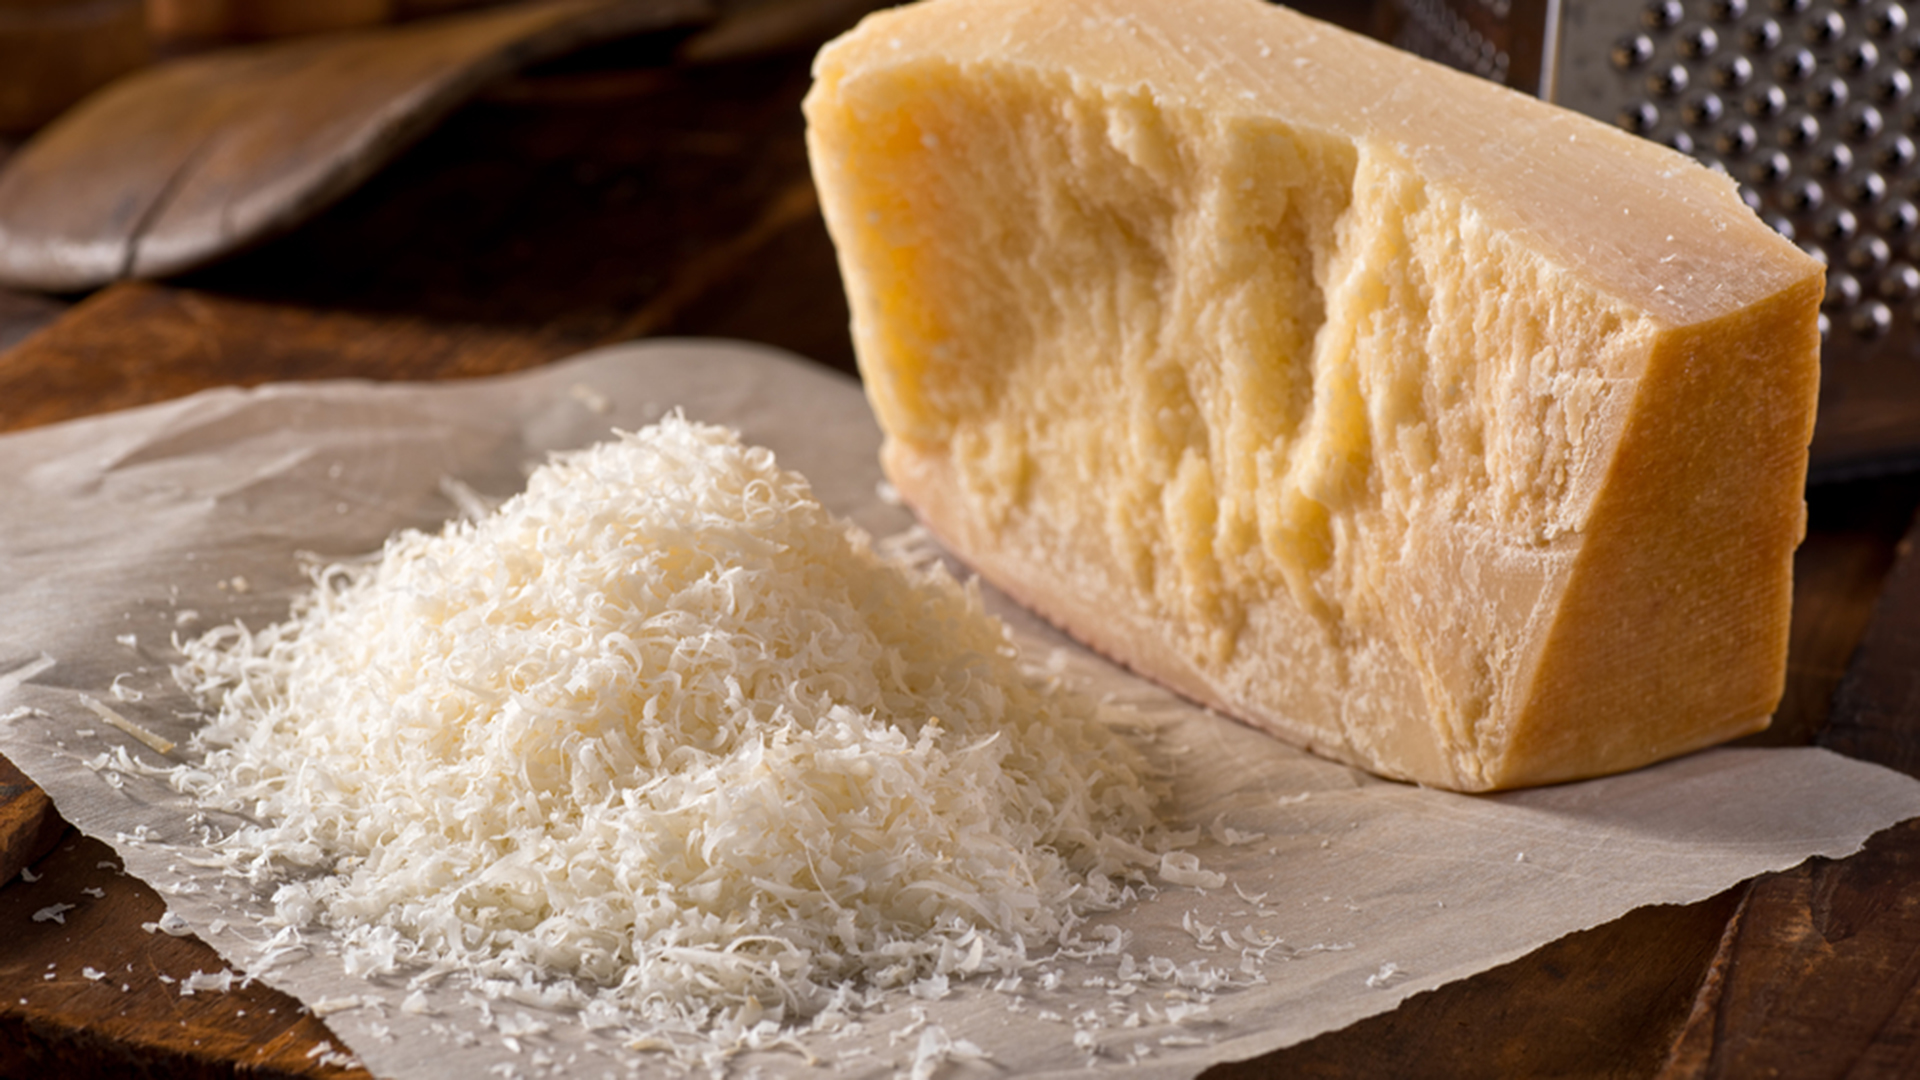 How to make sure you're getting real Parmesan cheese ...